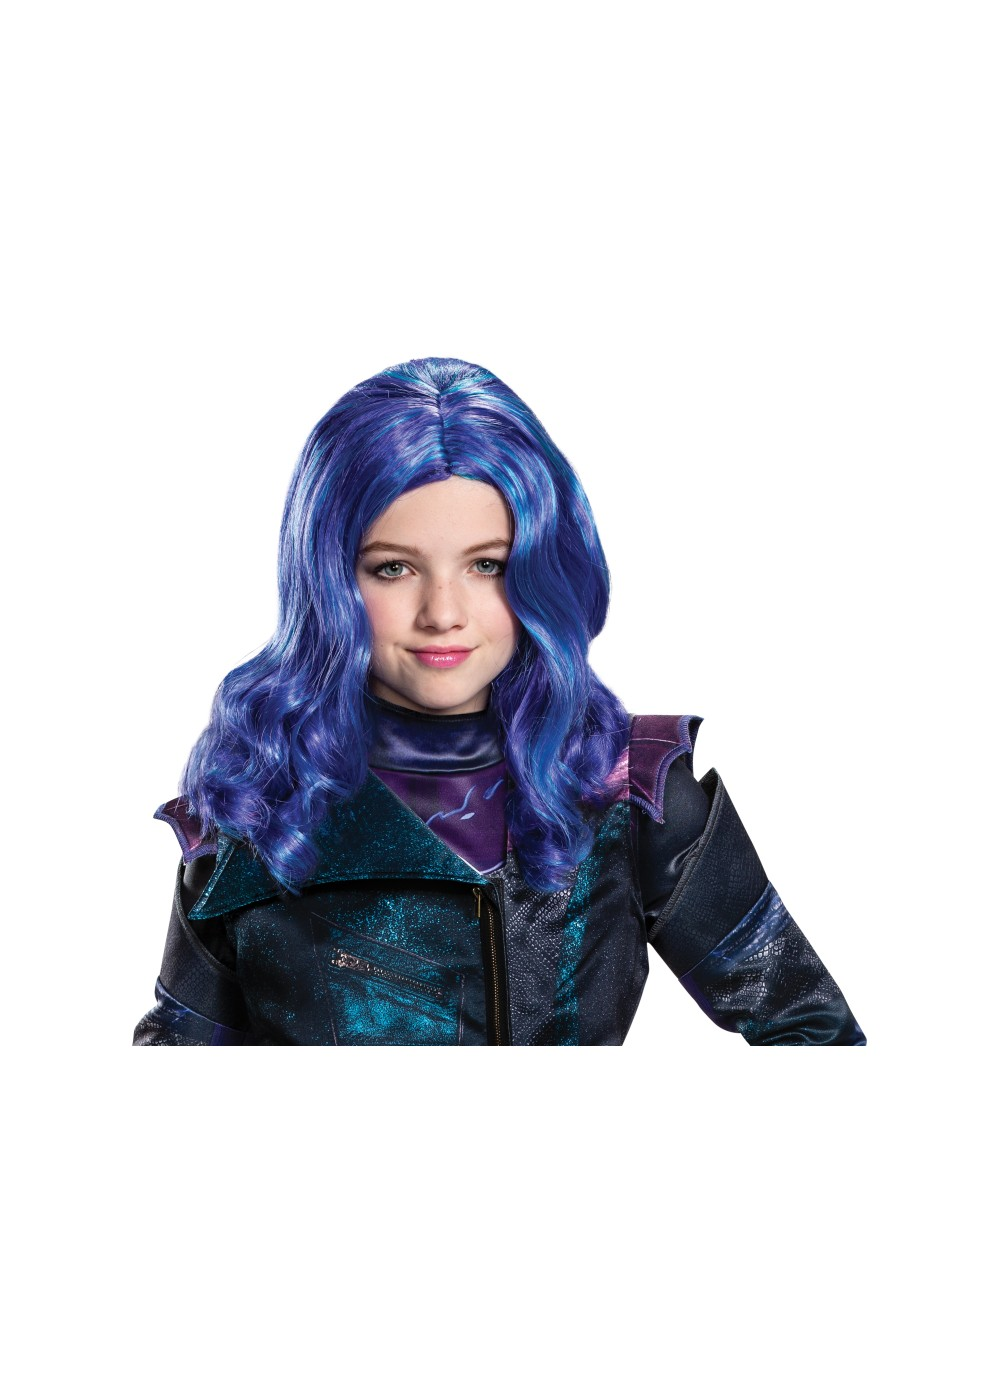 Mal Descendants 3 Girl Wig - TV Show Costumes - New for 2019